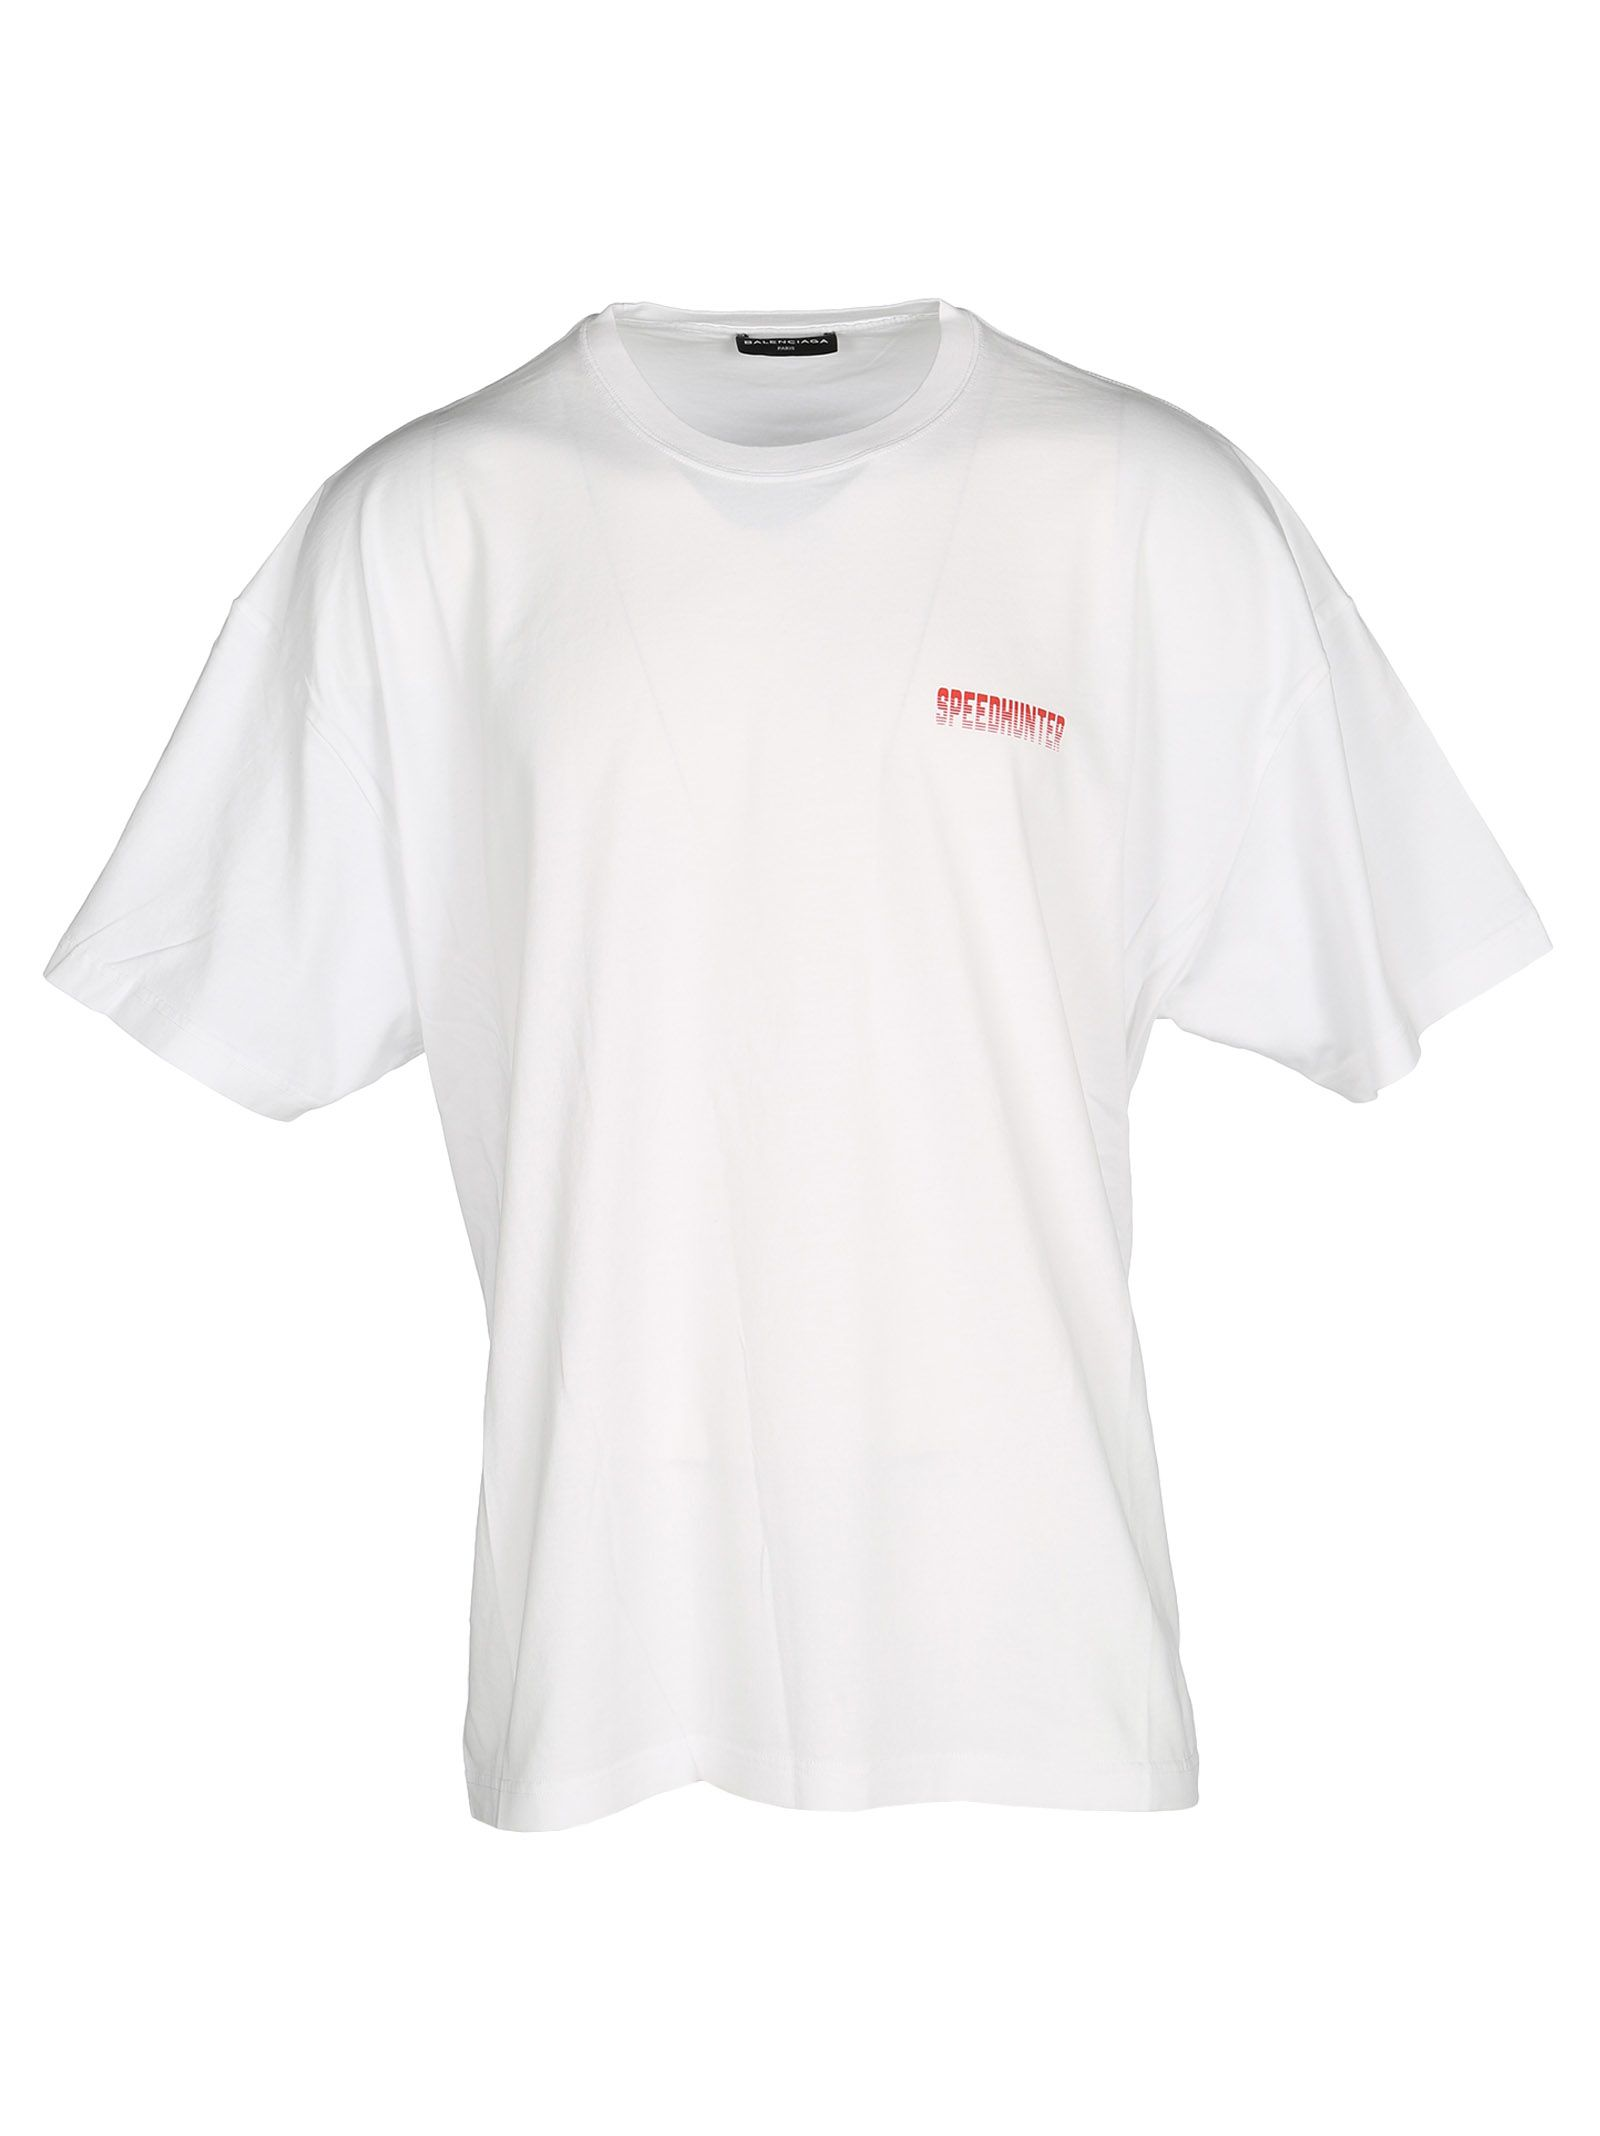 balenciaga t shirt mens white